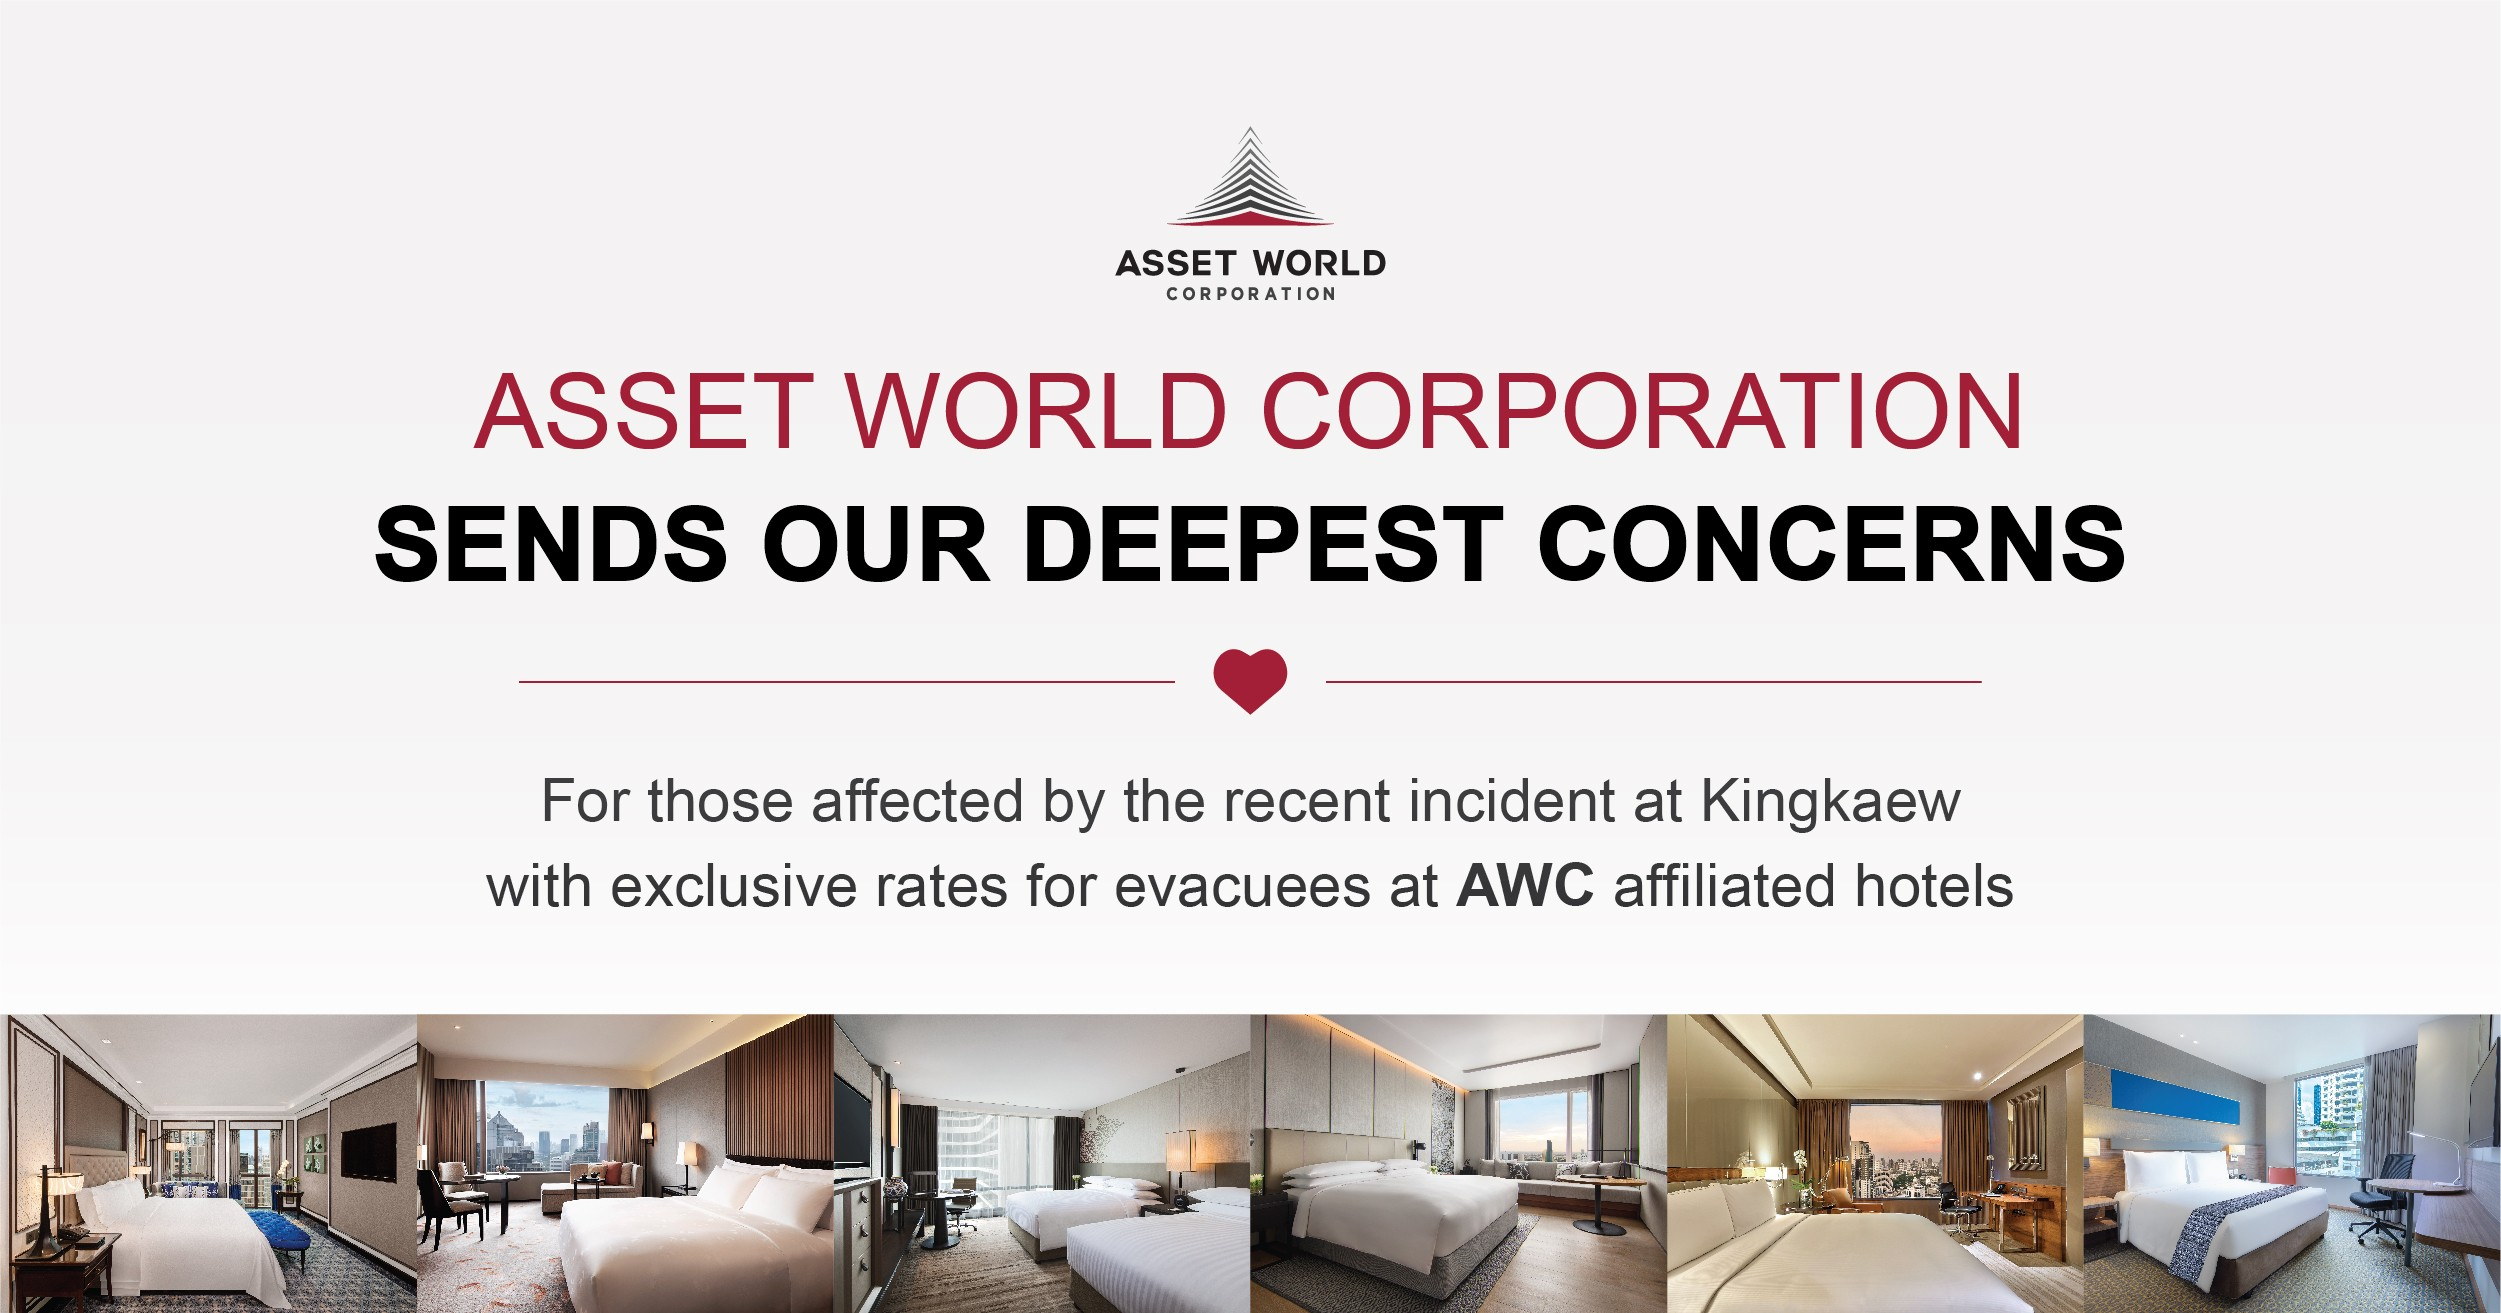 Asset World Corporation sends our deepest concerns for those affected by the recent incident at King-kaew with special rates for evacuees at AWC affiliated hotels